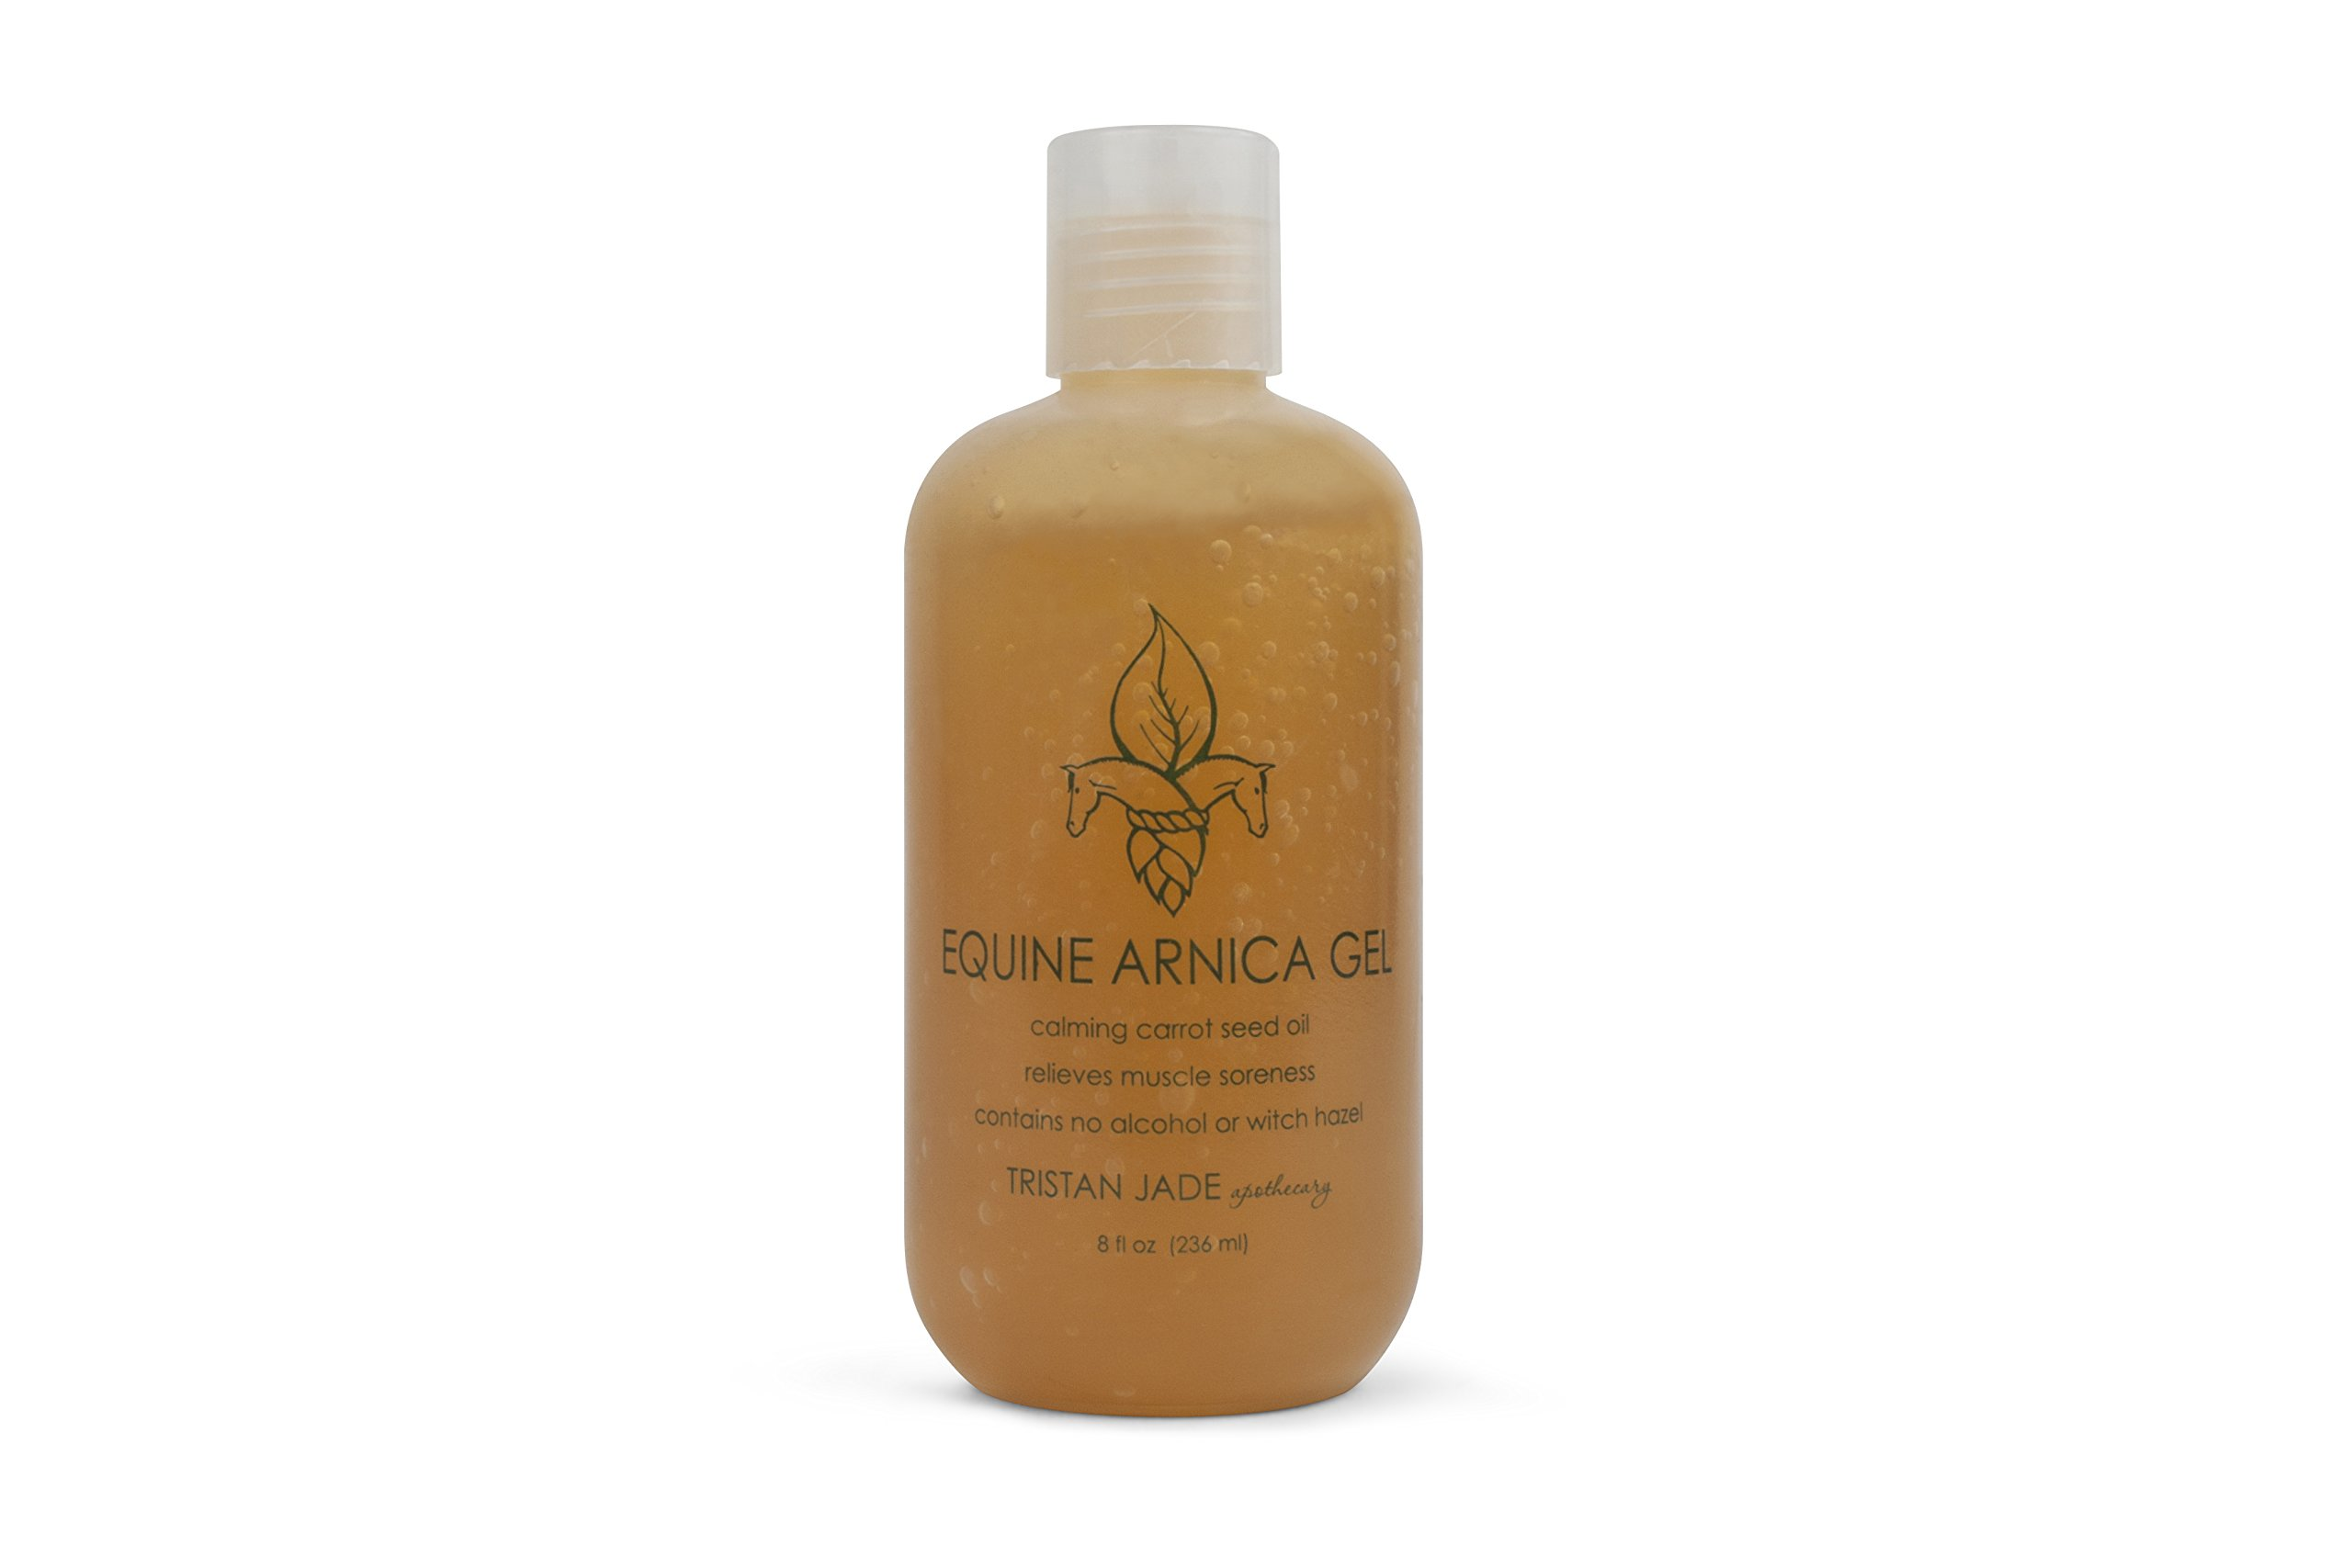 Tristan Jade Apothecary 24% Arnica in Equine Arnica, 8 fl oz with Aloe Vera, Calming Carrot Seed Oil Scent, New Formula for Better Arnica Absorption! by Tristan Jade Apothecary